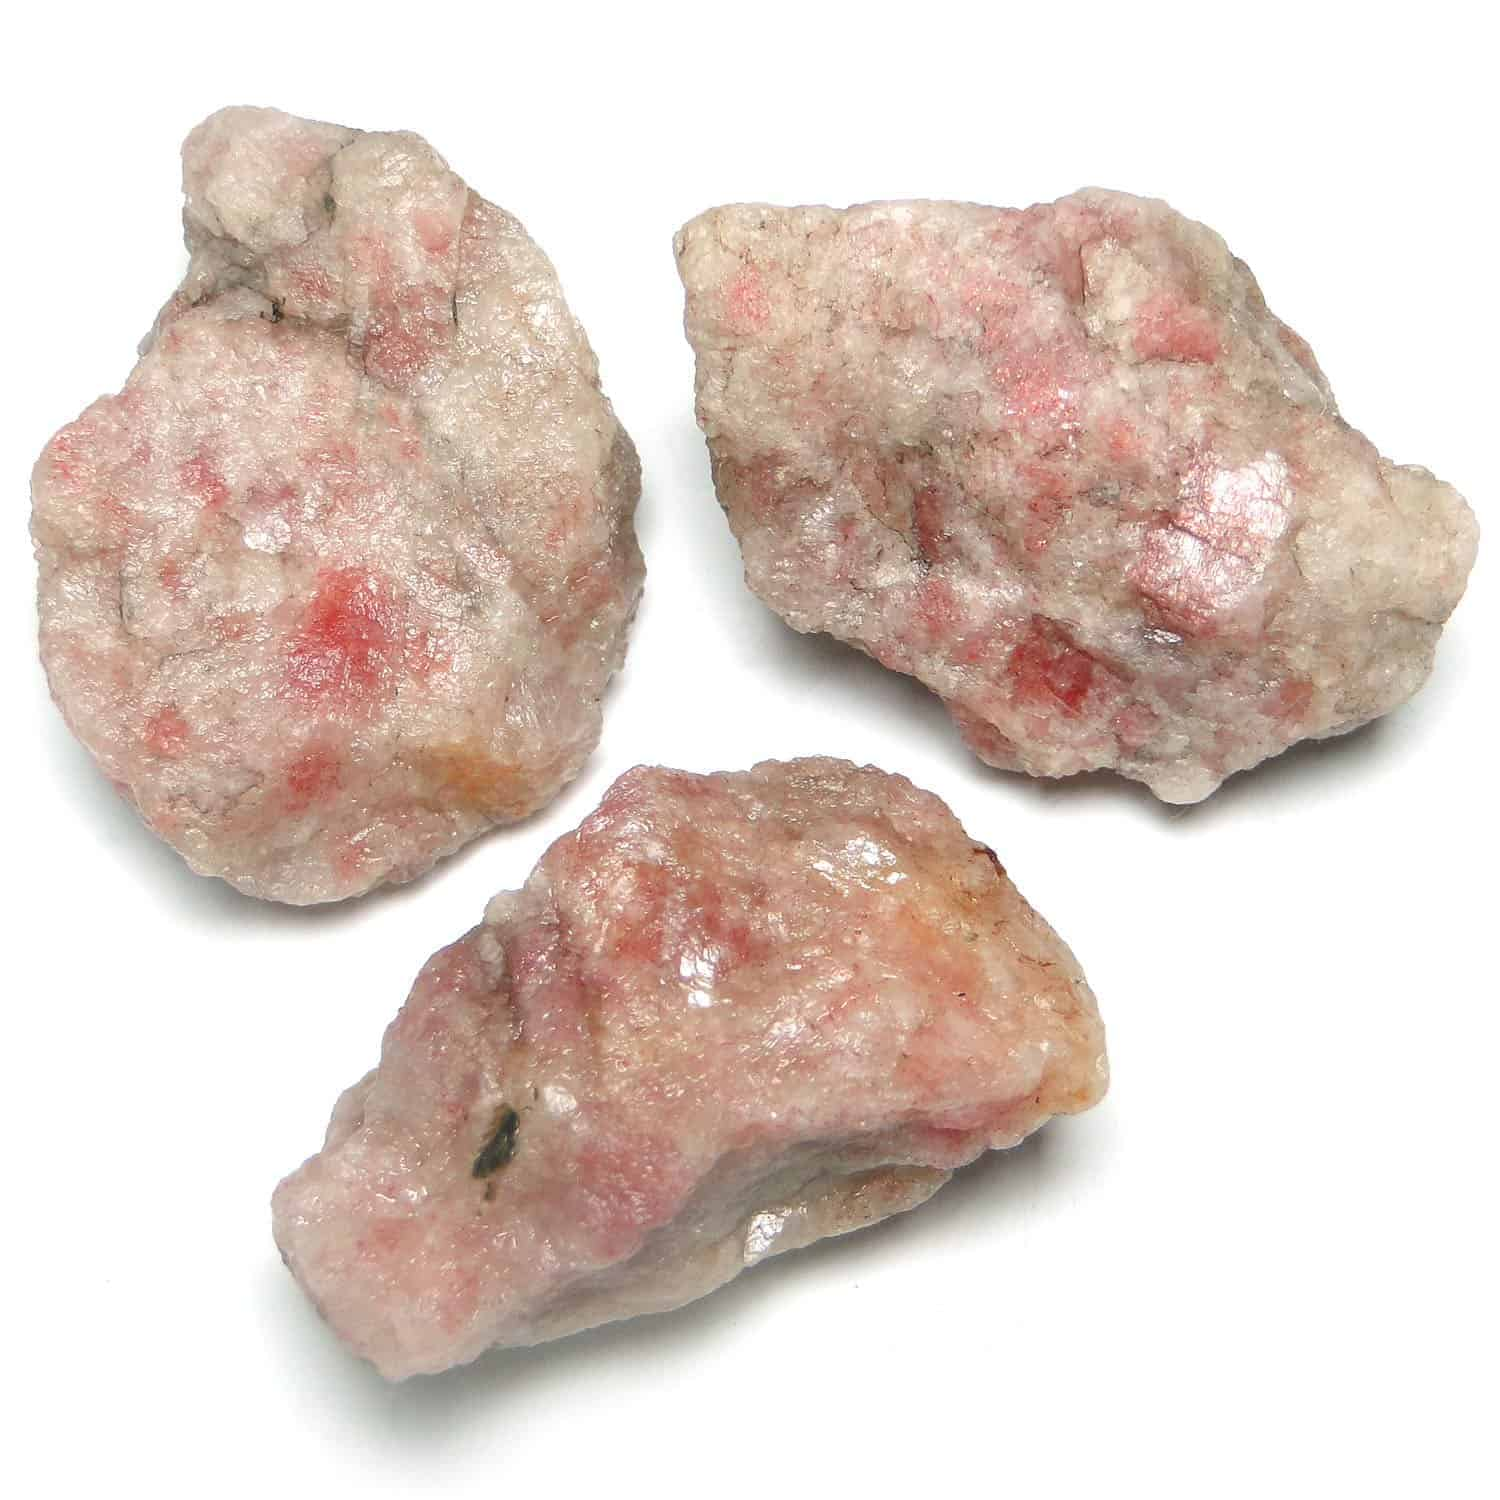 Sunstone Natural Raw Rough Chunks Nature's Crest RC022 ₹199.00